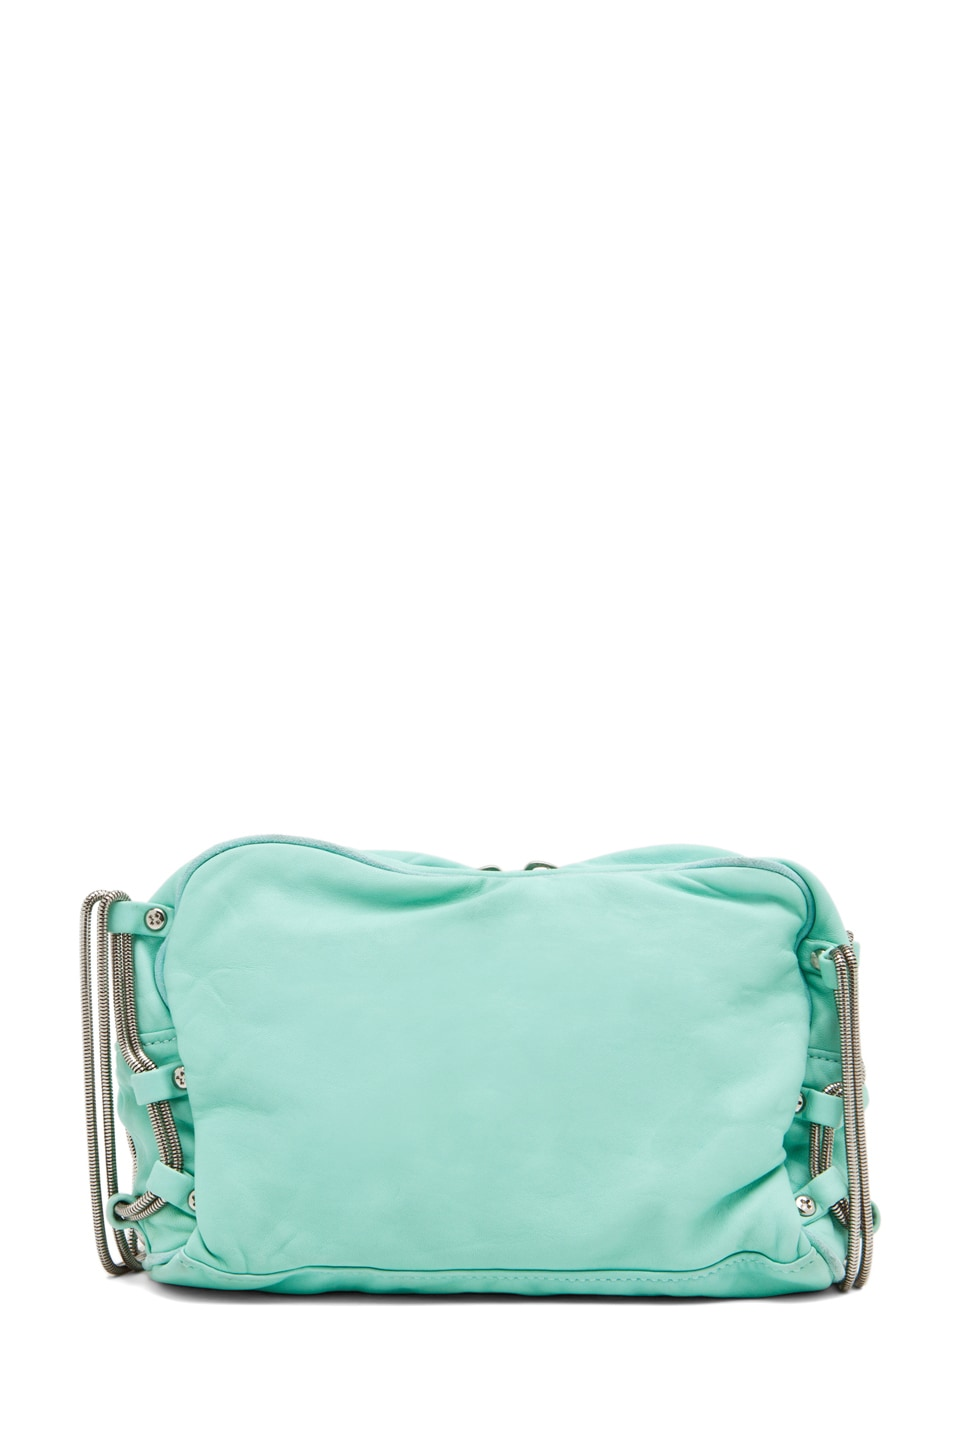 Image 2 of Alexander Wang Brenda Chain Bag in Acqua